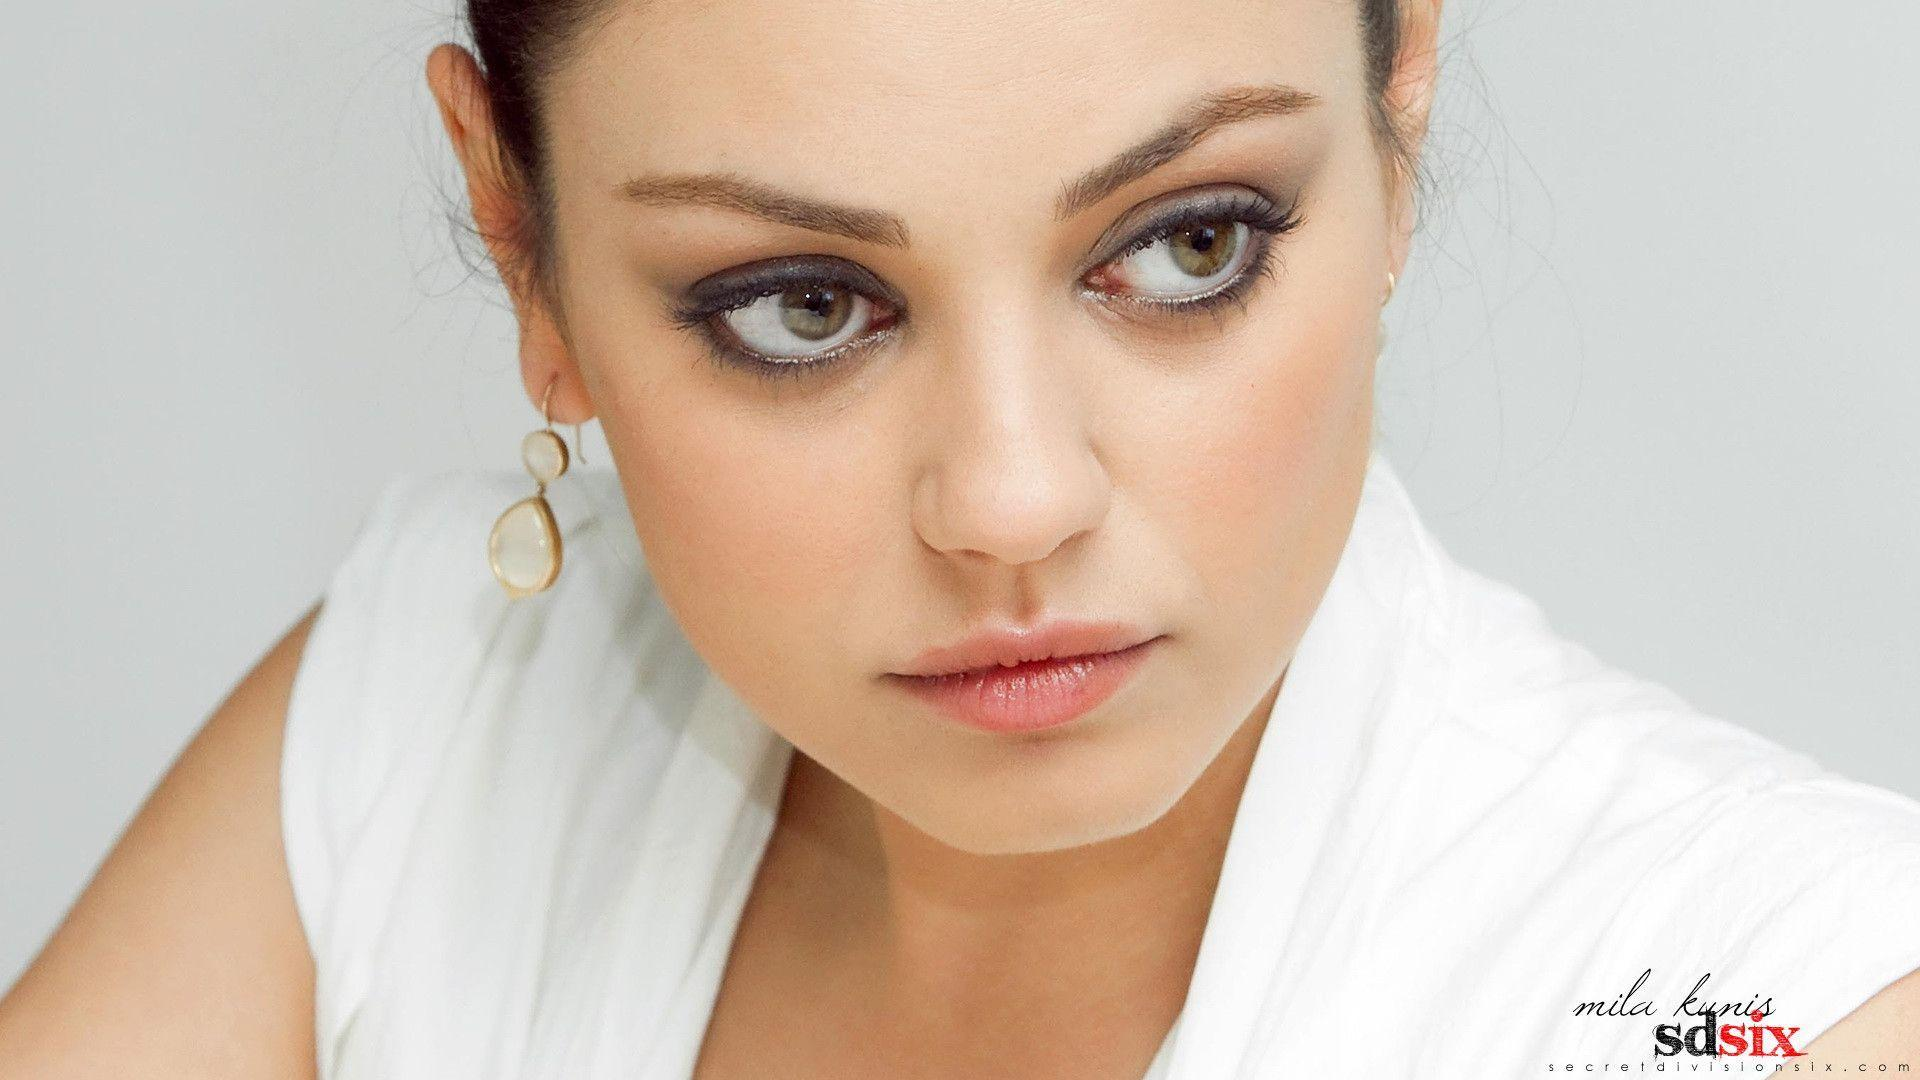 Mila Kunis Hot Wallpapers | Free Internet Pictures